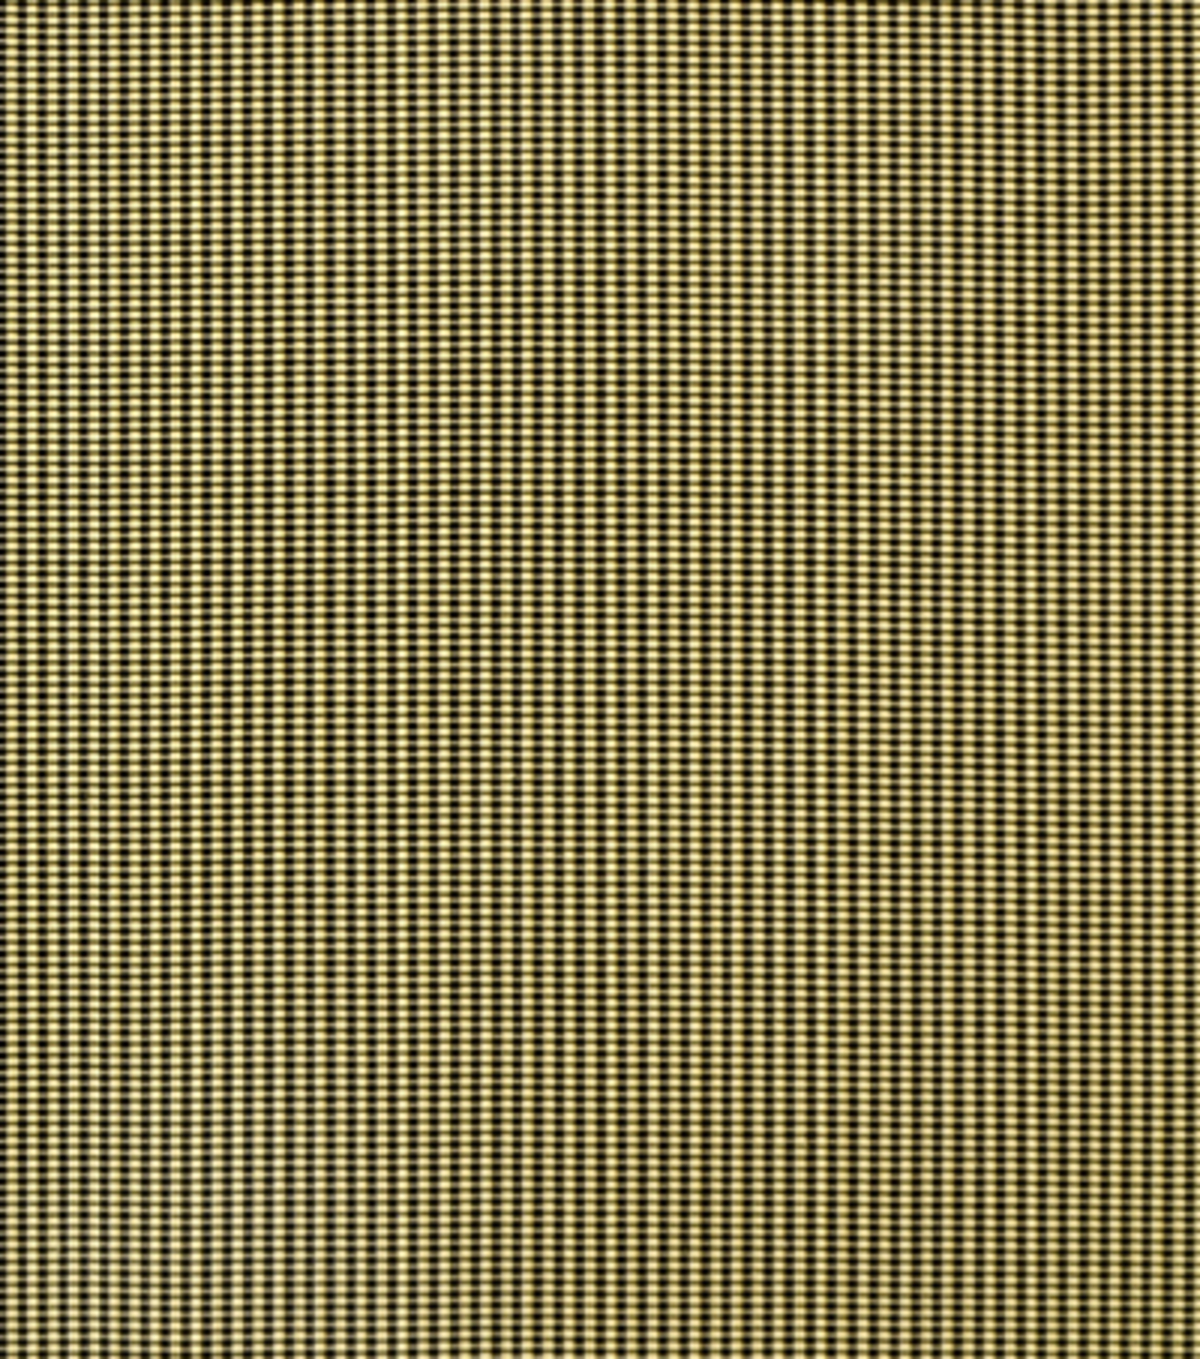 Home Decor 8\u0022x8\u0022 Fabric Swatch-Covington Pixie 909 Onyx